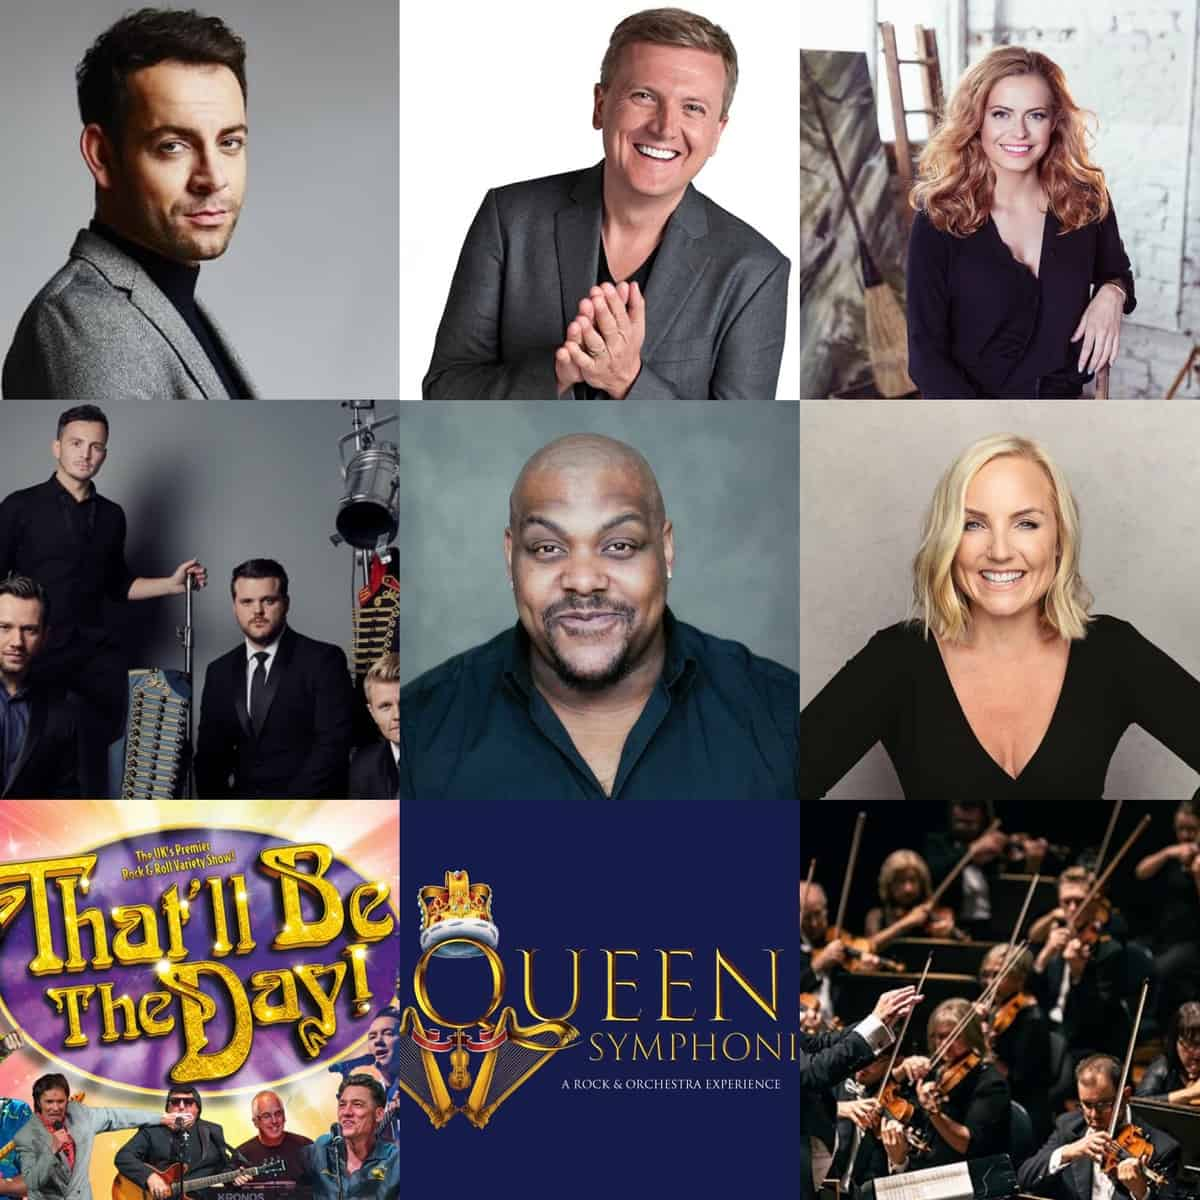 Doncaster Musical Theatre